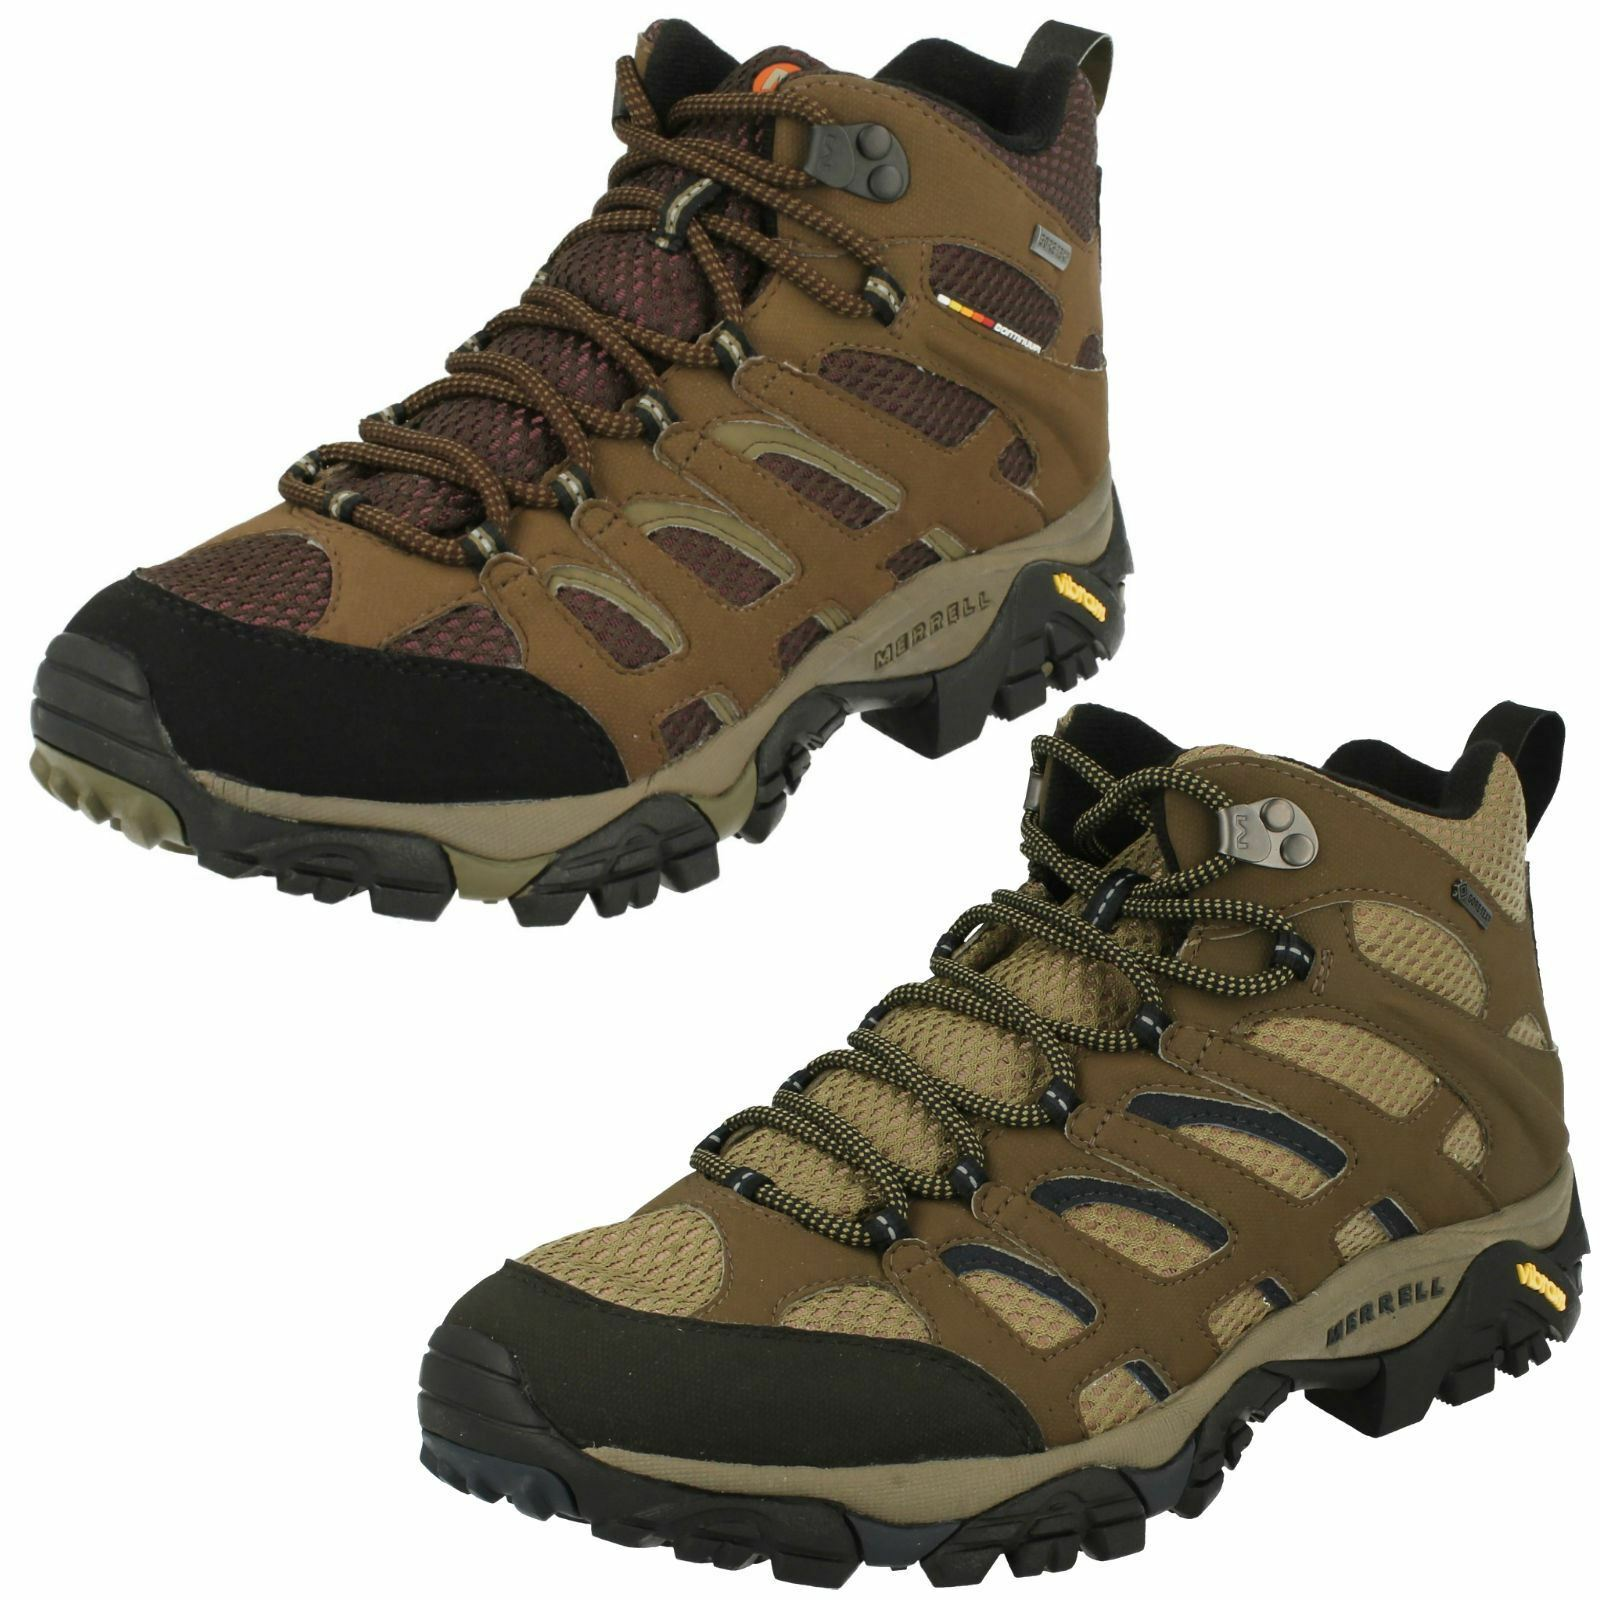 Mens Merrell Gore-Tex Lace Up Walking Boots Moab Mid